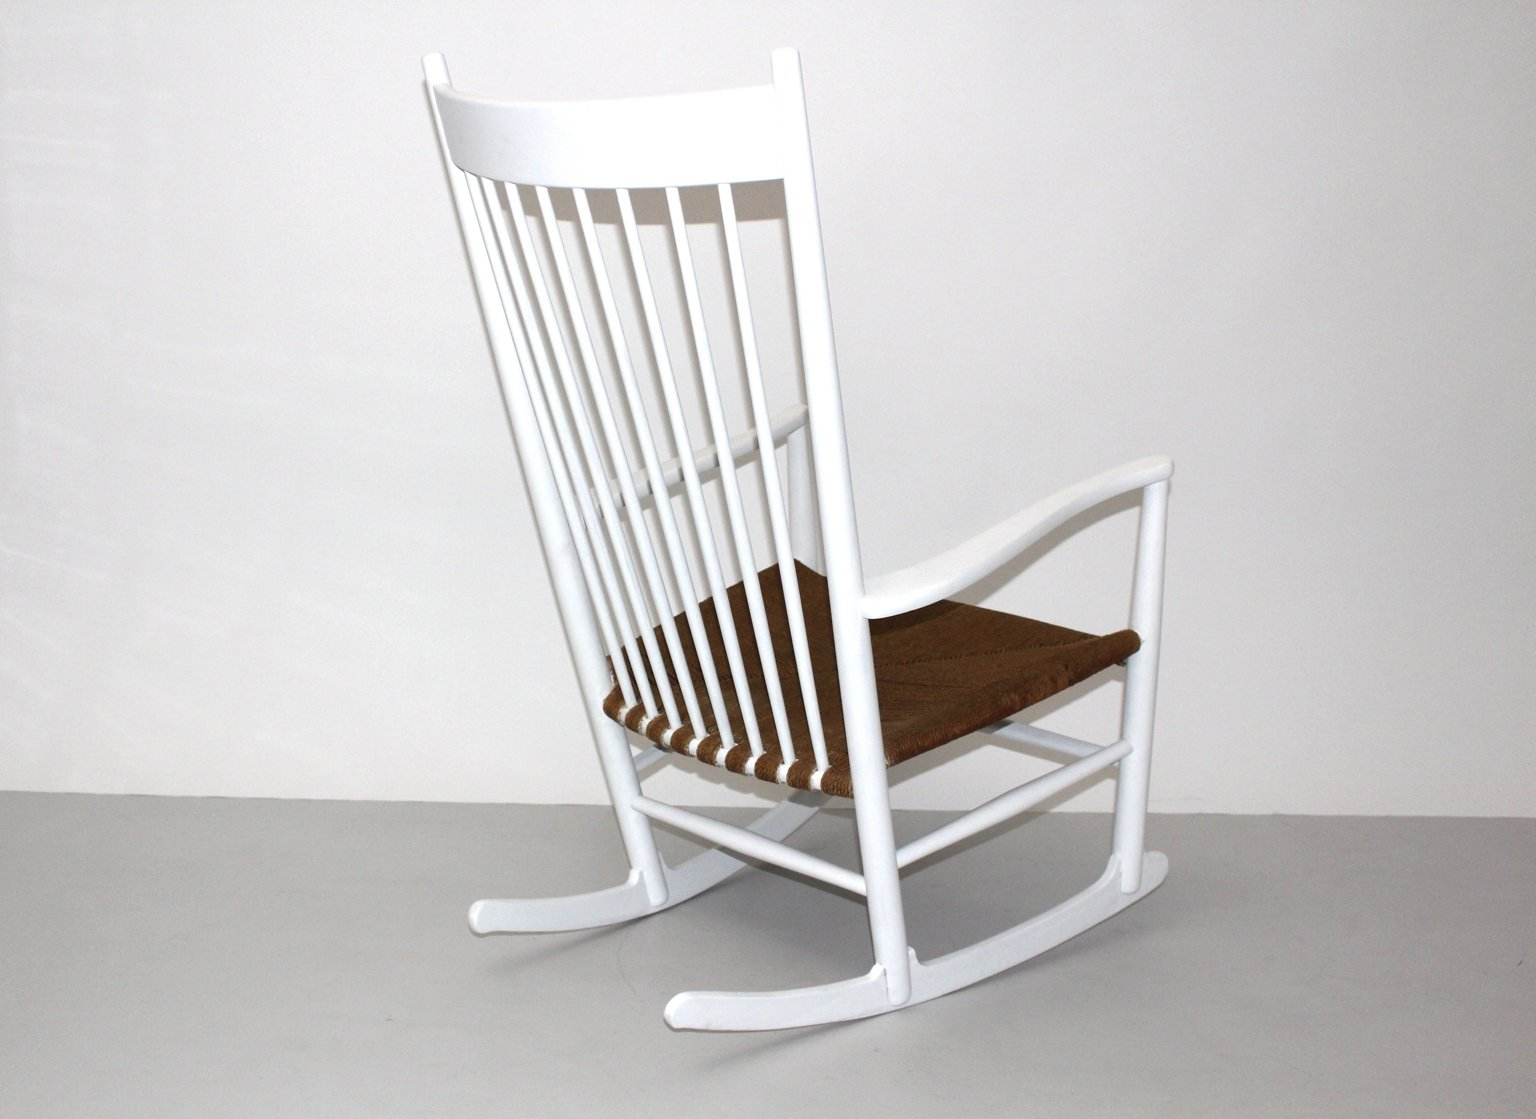 J16 Rocking Chair By Hans Wegner For Mobler F. D. B. 1964 For Sale At . Full resolution‎  portraiture, nominally Width 1536 Height 1119 pixels, portraiture with #462C18.